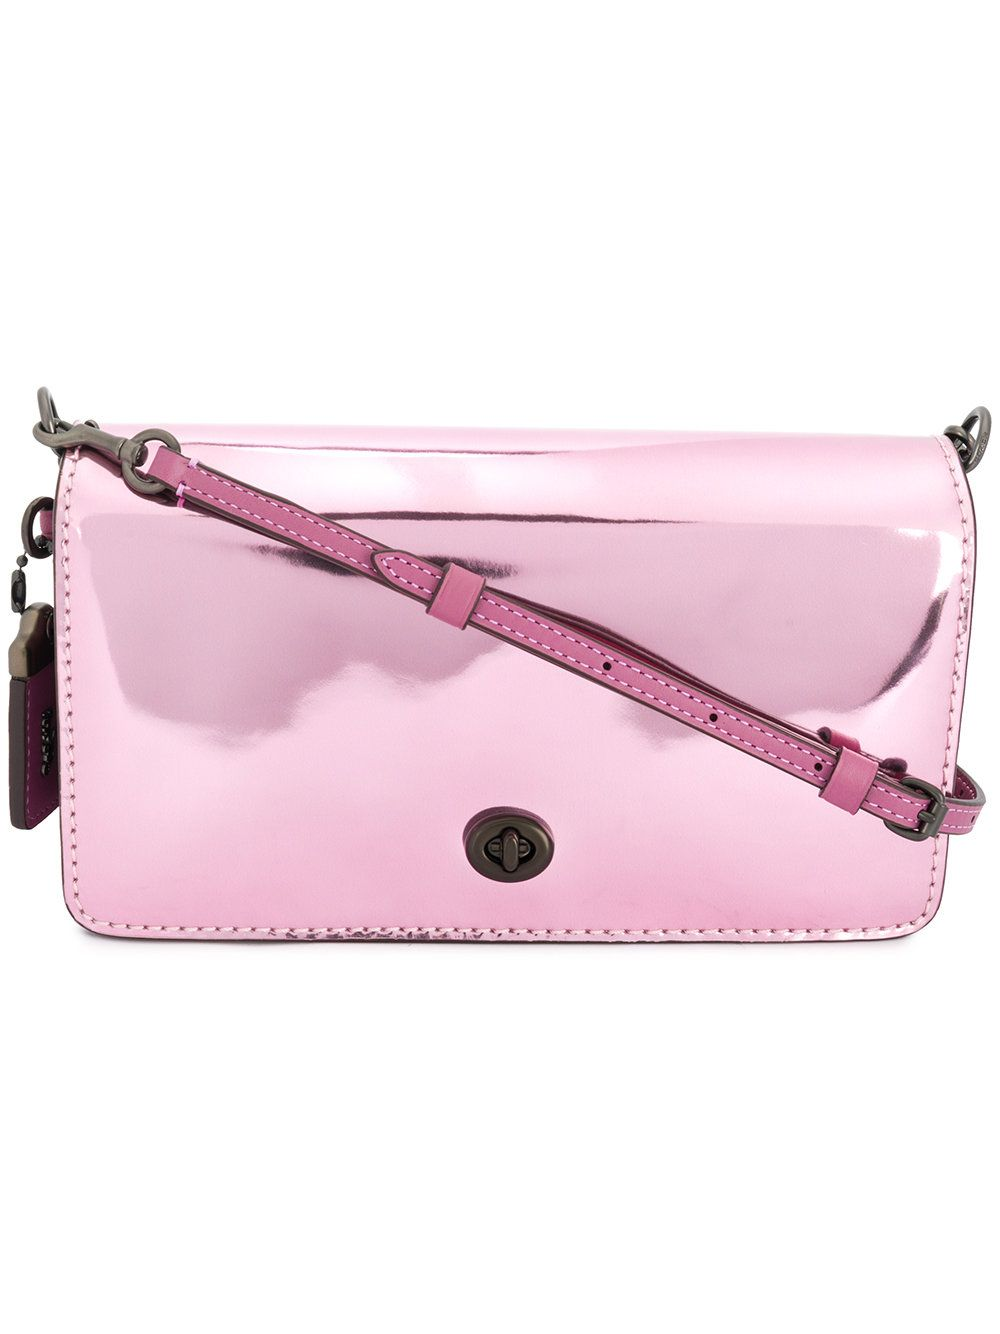 Dinky Crossbody Bag in Metallic Pink Calfskin Coach XoZ2Oi